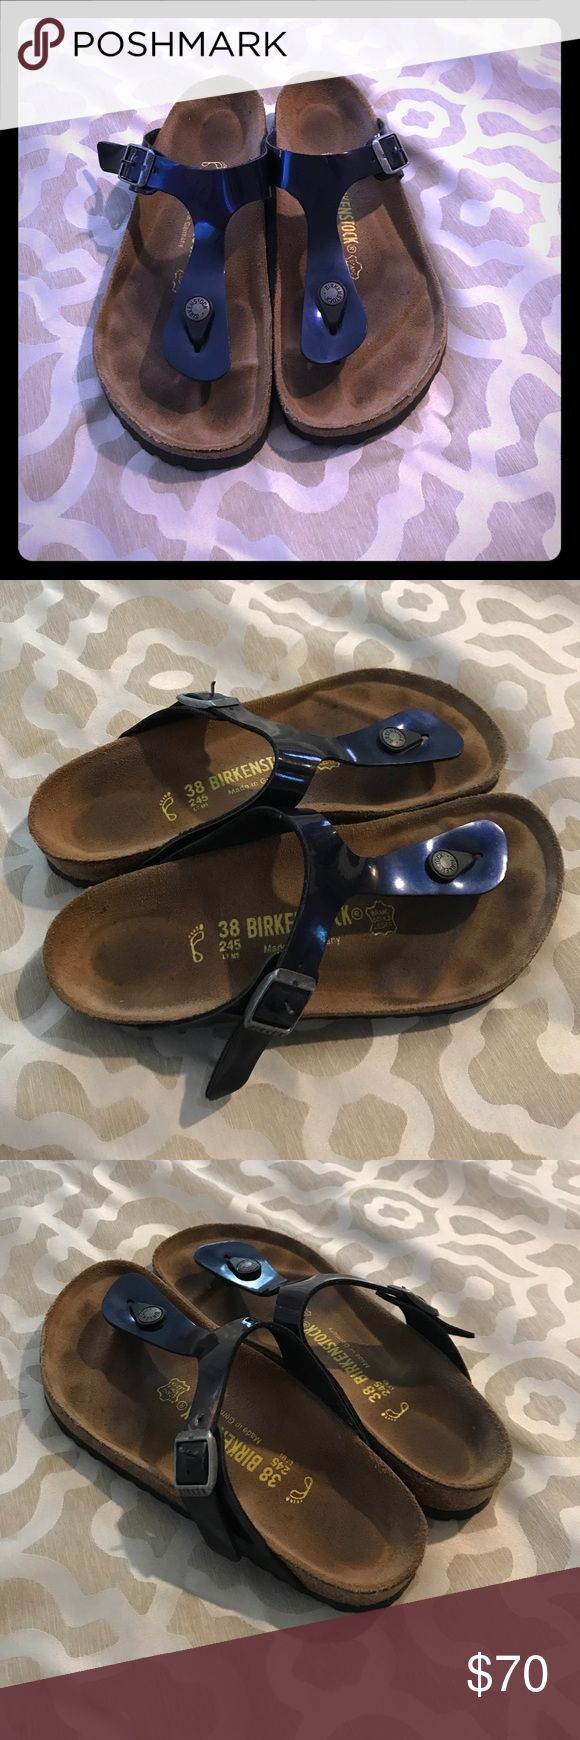 Birkenstock 😍 This is a rePosh! Purchased from Poshmark and I absolutely love these gorgeous Birks but unfortunately they are just slightly on the narrow side for my feet to be truly comfortable. A beautiful deep navy patent color, barely any wear, excellent used condition and ready for a new home where they will be loved for years to come! Birkenstock Shoes Sandals